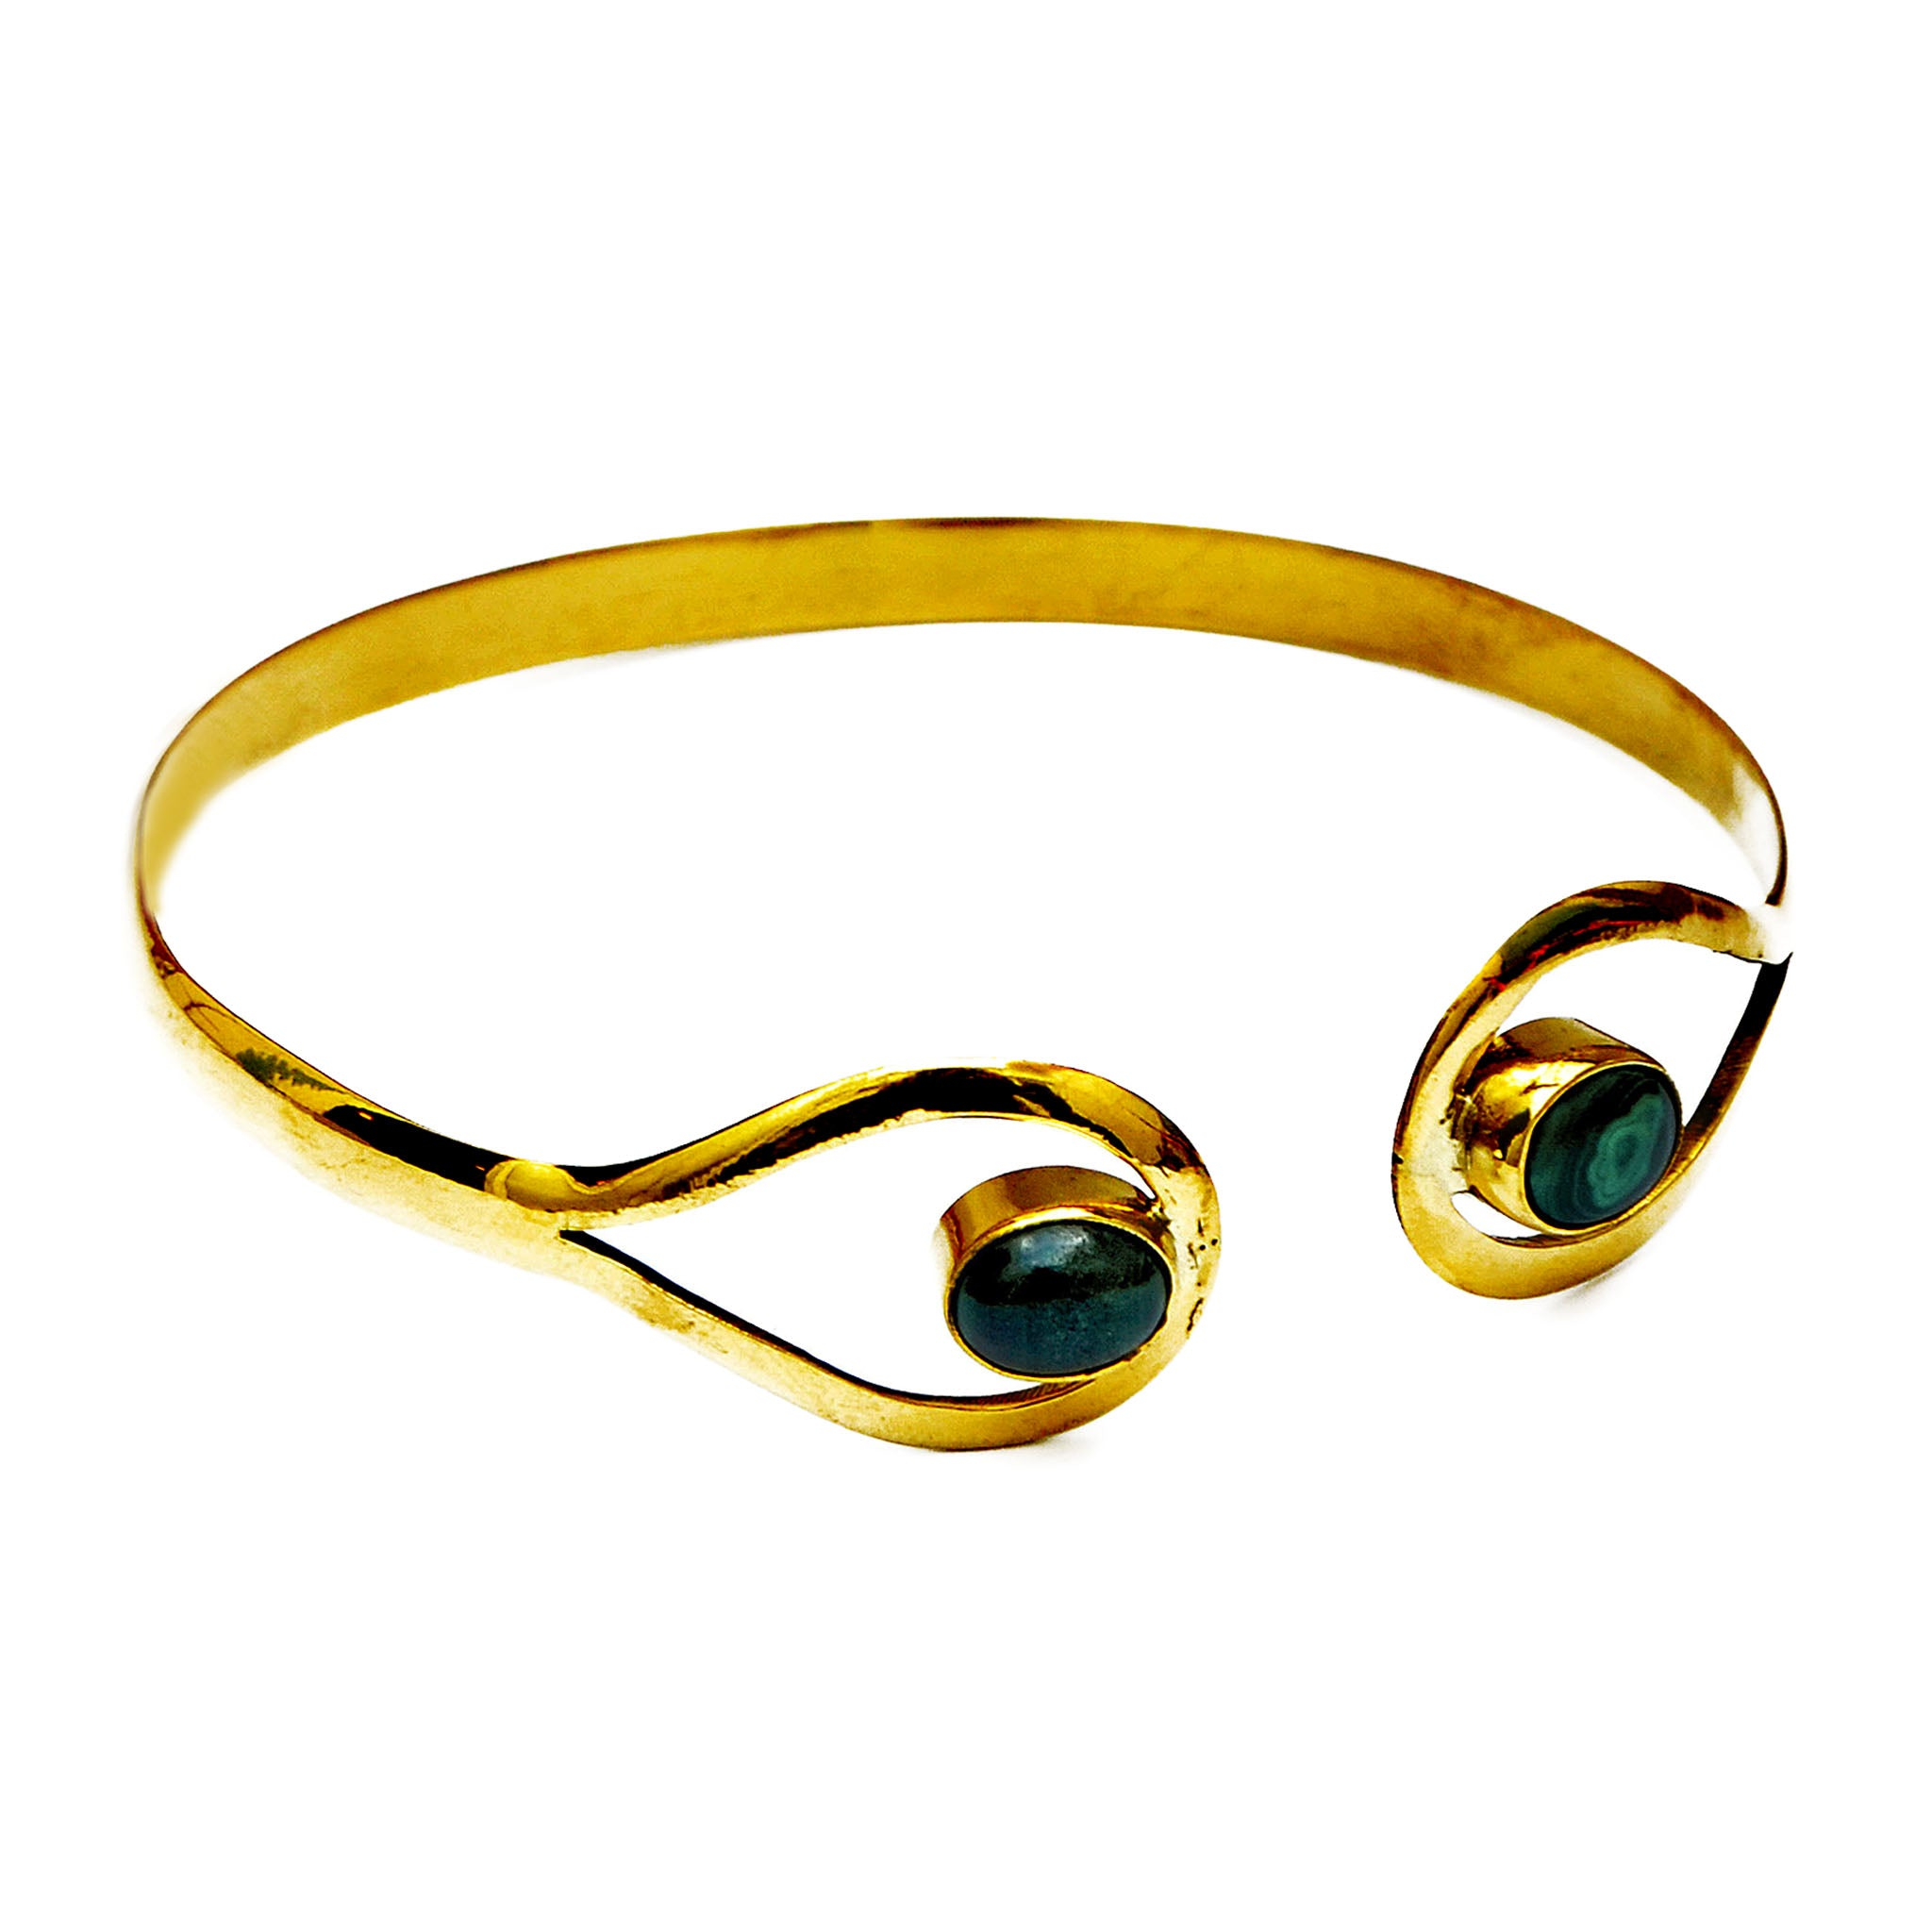 Gold arm band